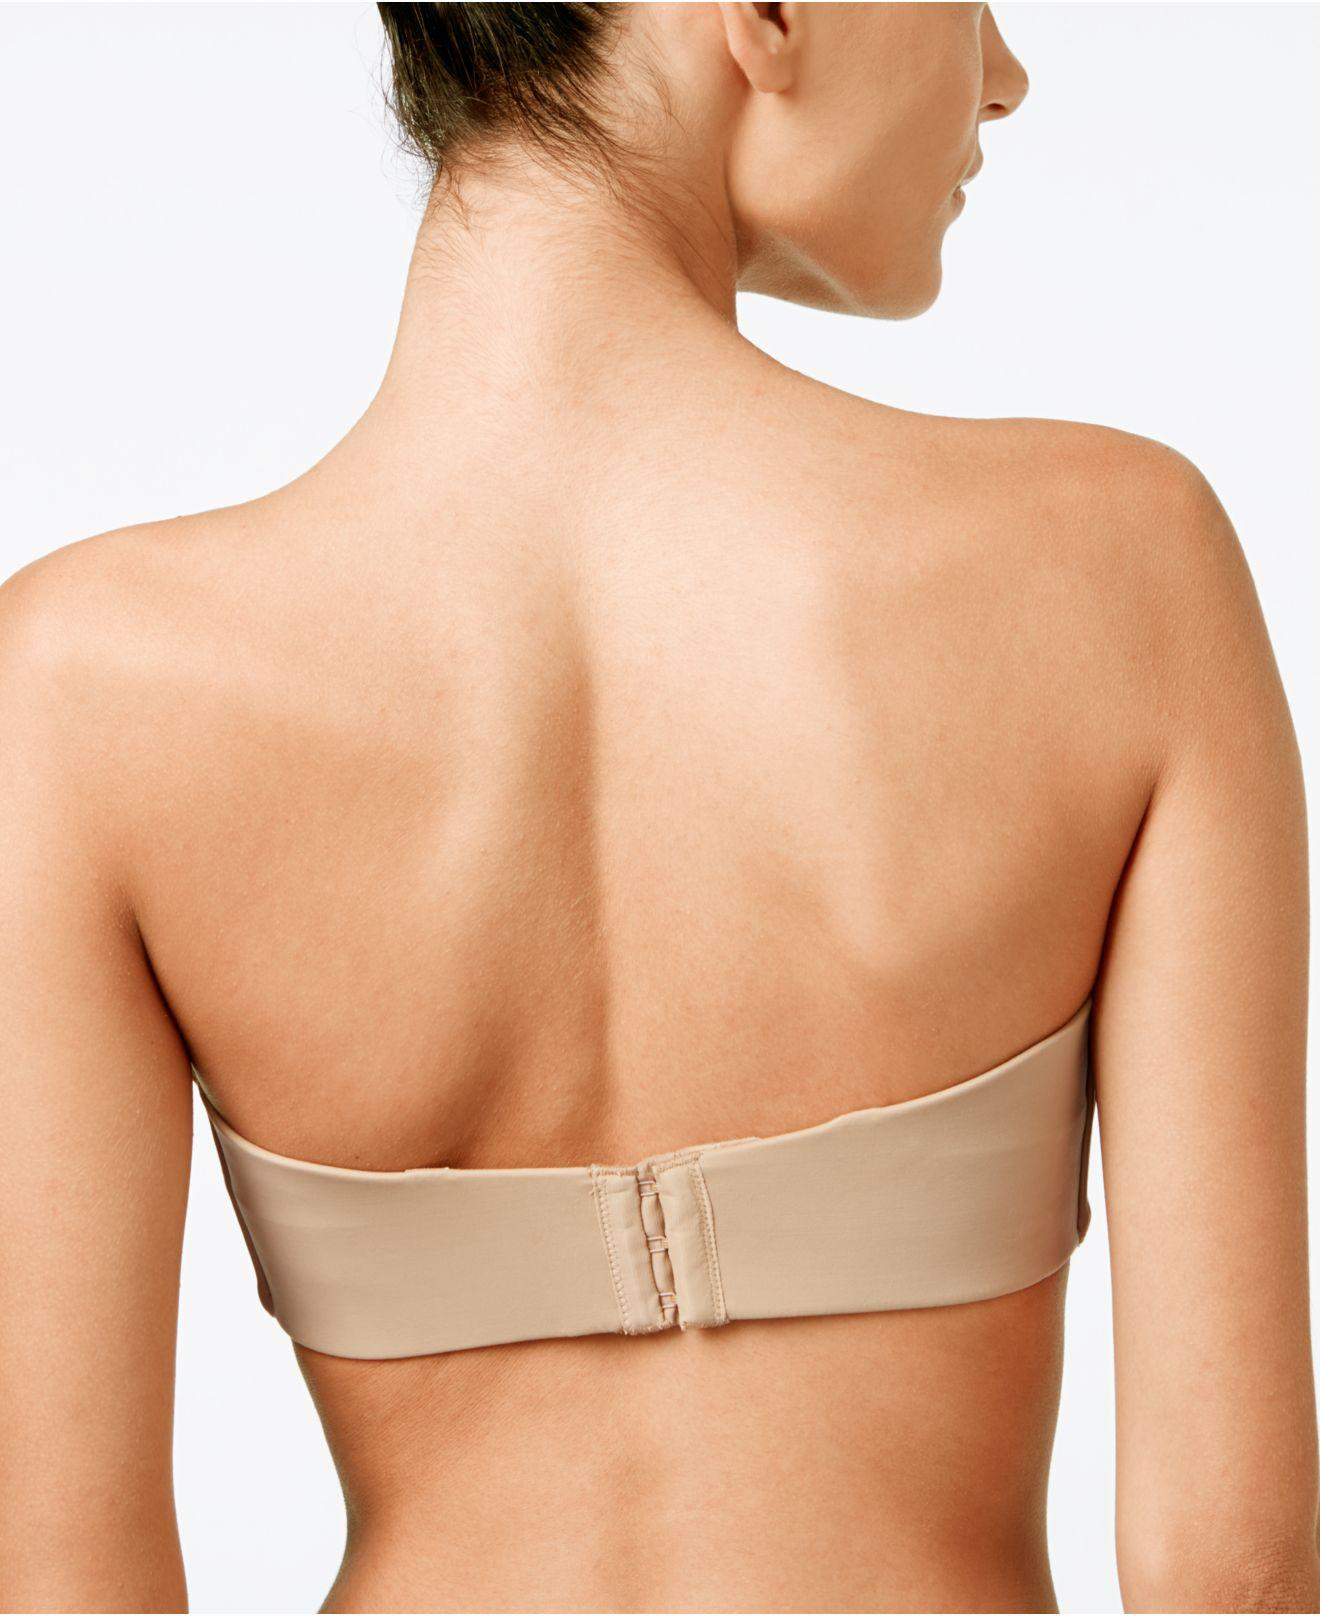 29b60effcd Lyst - Lilyette Tailored Strapless Minimizer Bra 939 in Natural - Save 5%